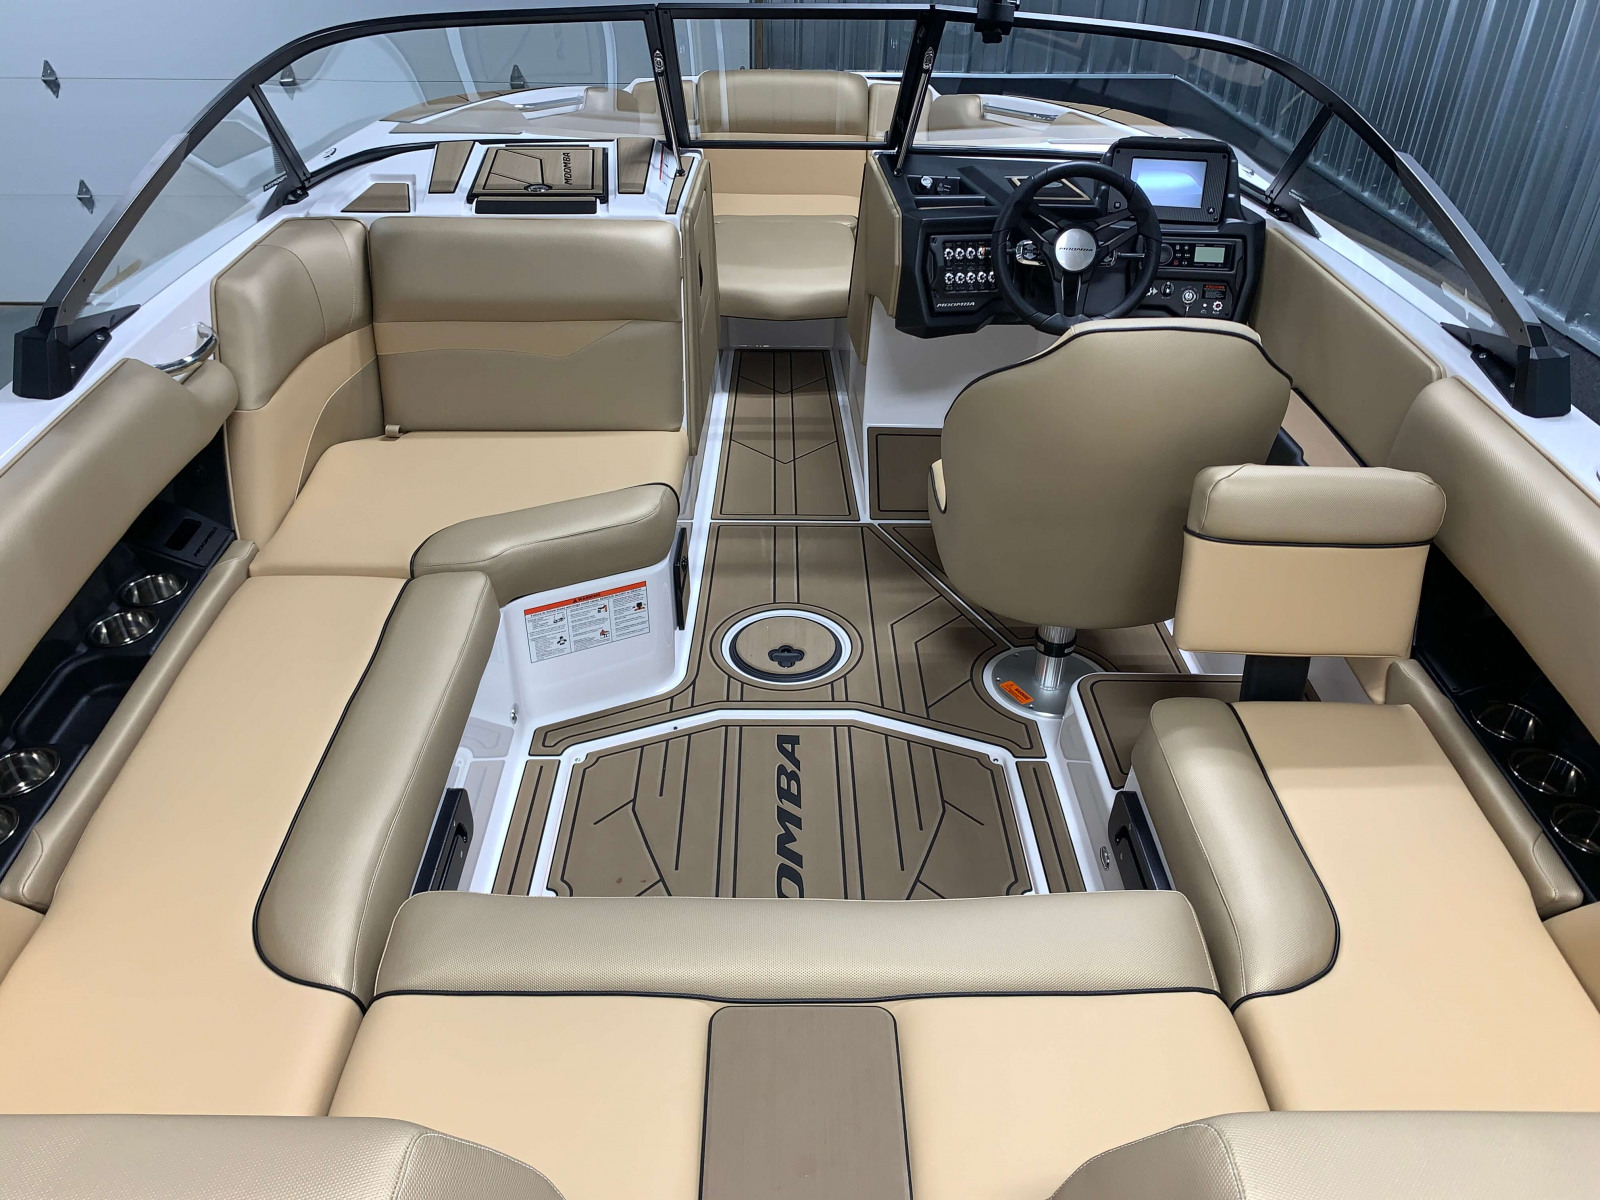 Interior Layout of the 2021 Moomba Mondo Wake Boat